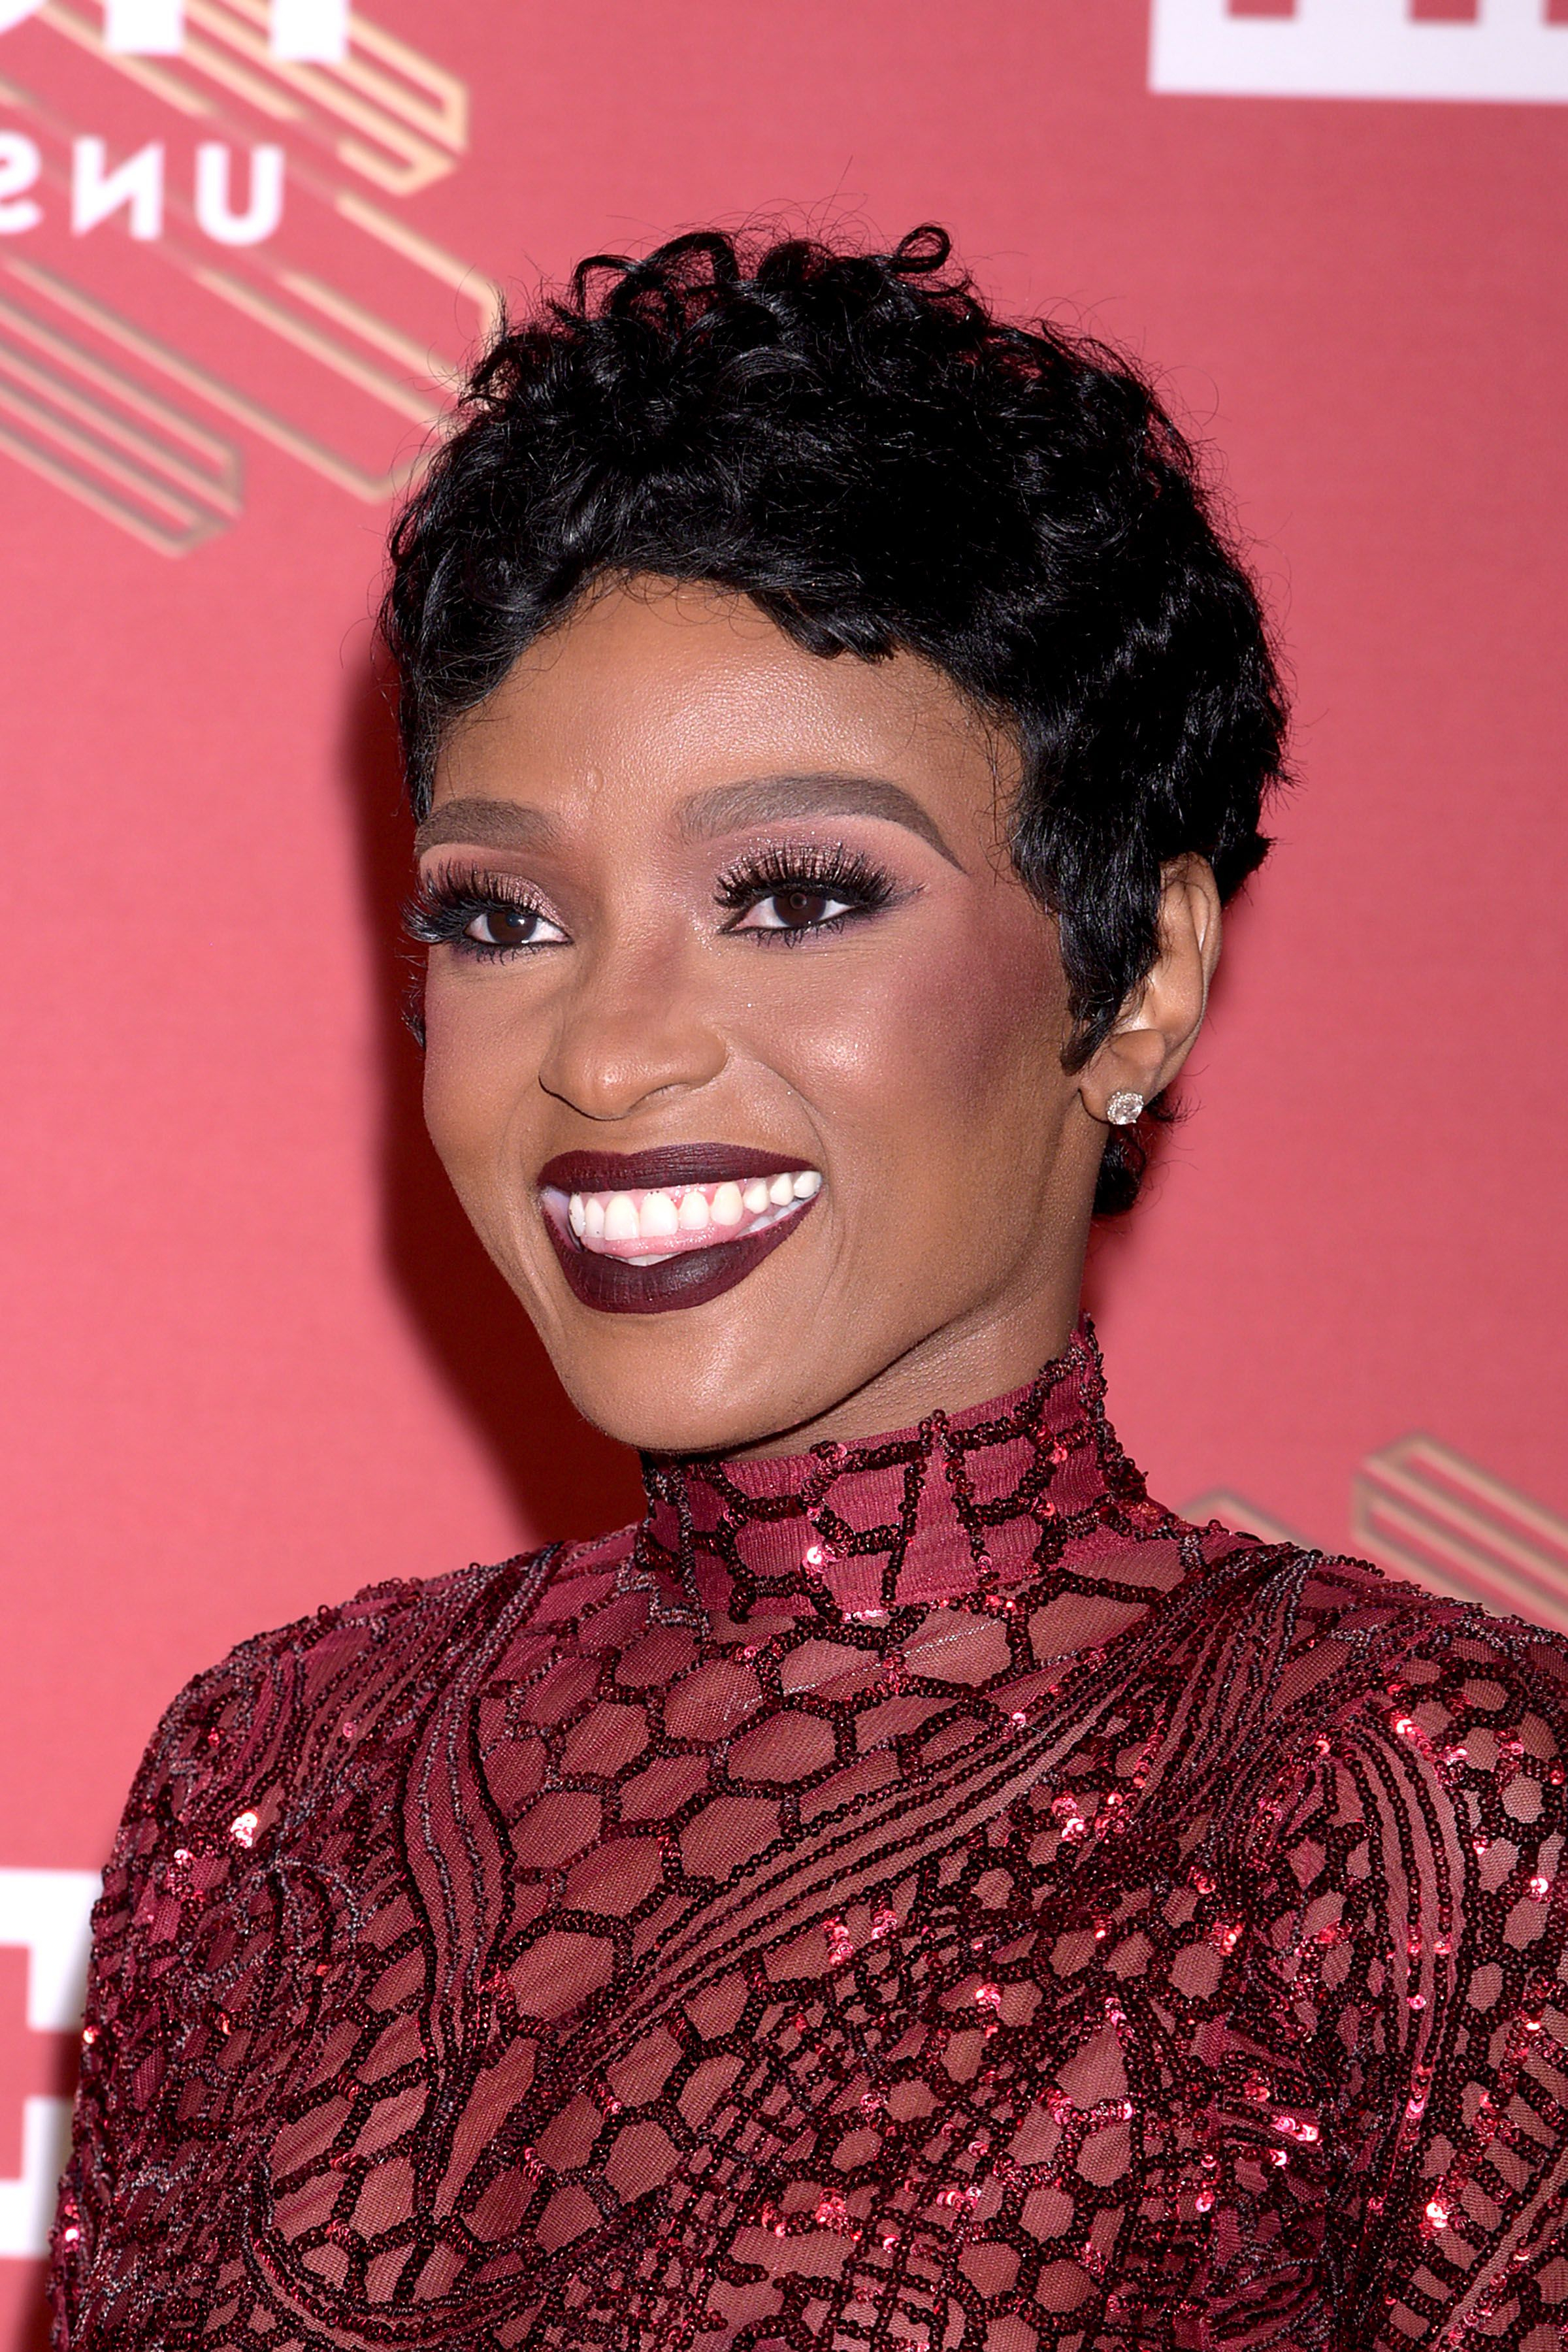 50+ Best Short Hairstyles For Black Women 2018 – Black Hairstyles Regarding African Women Short Hairstyles (View 10 of 25)